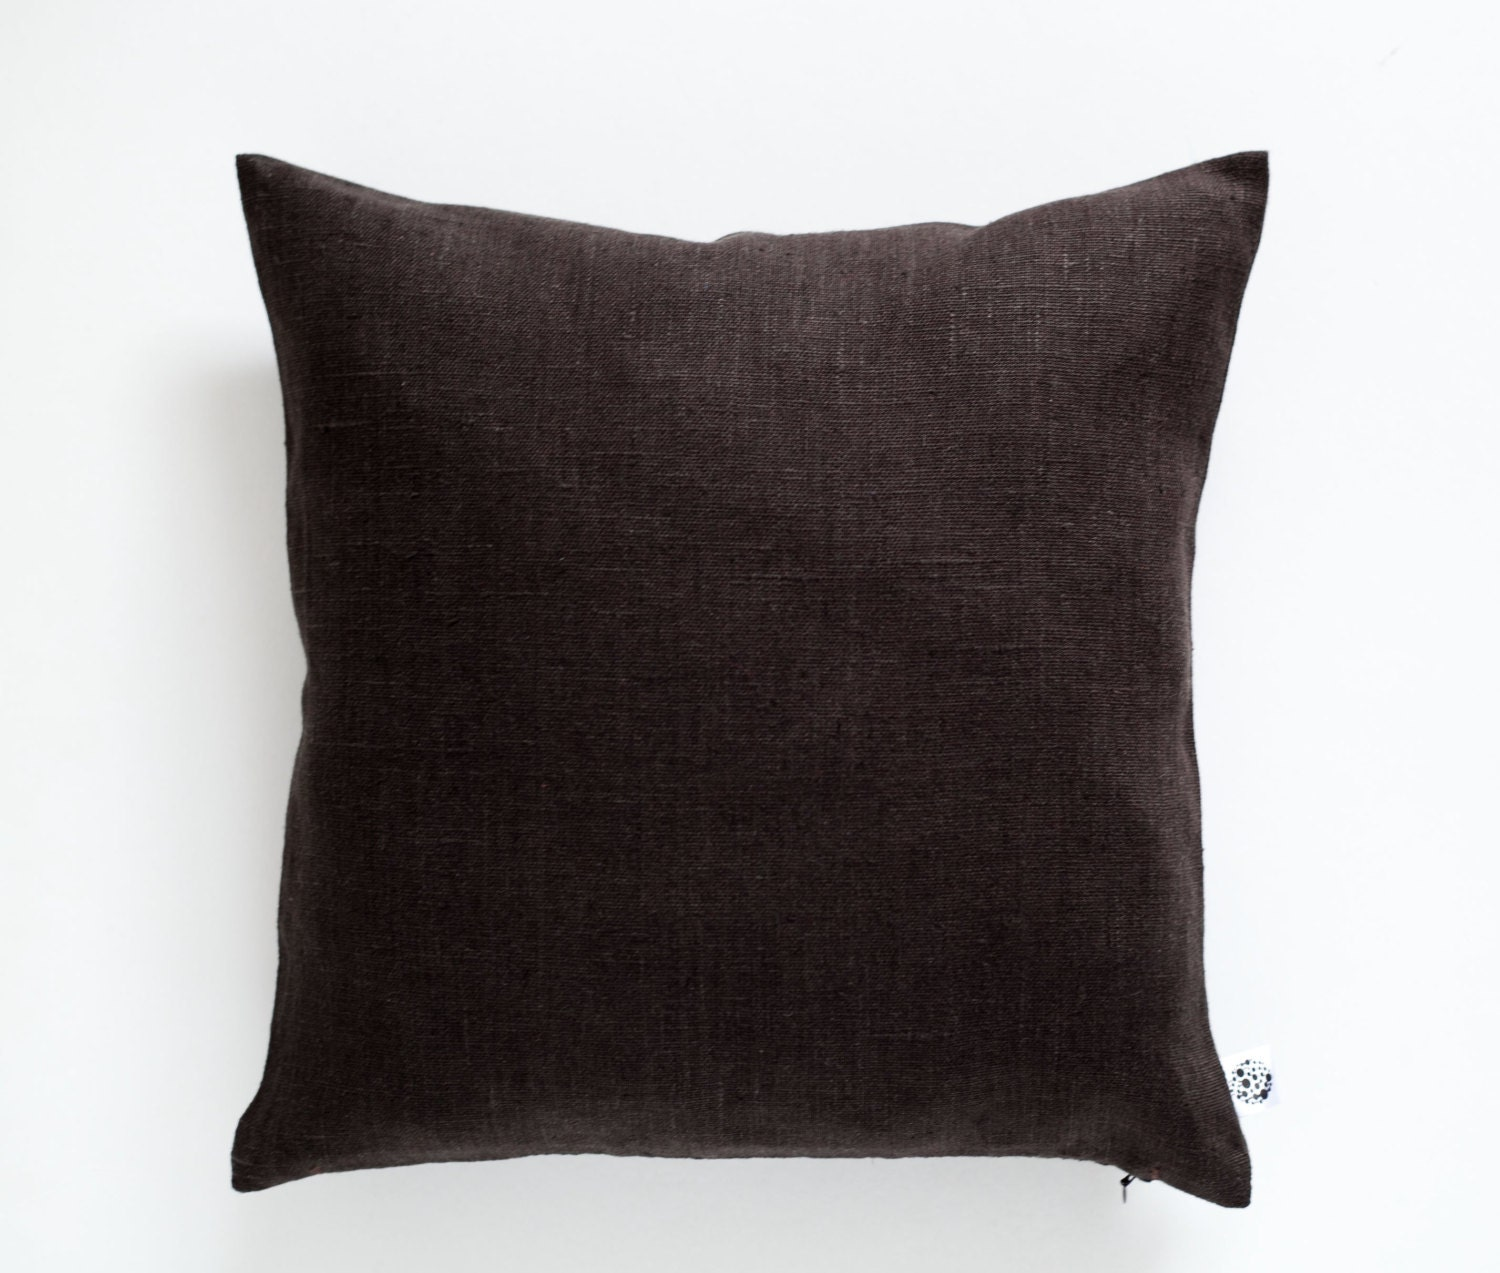 Decorative Pillow Brown : Brown throw pillows Chocolate brown pillow Brown decorative